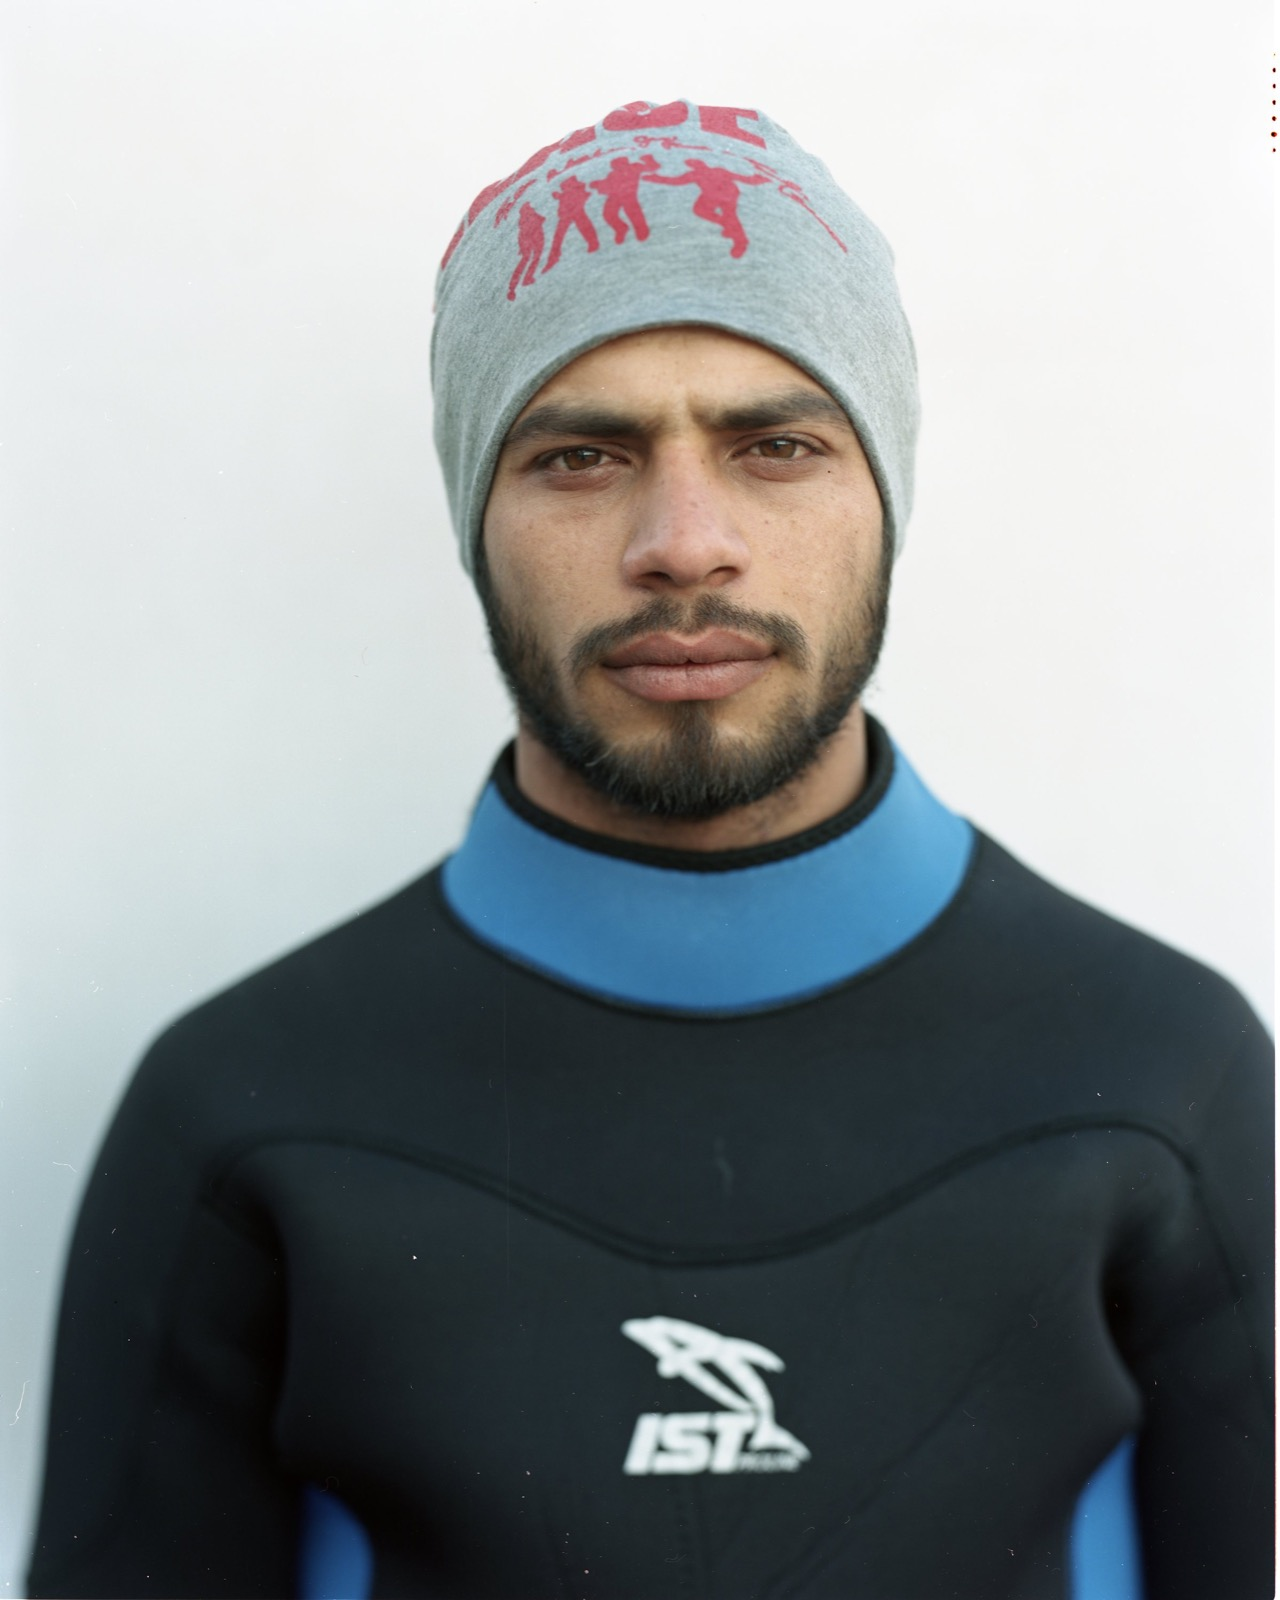 Rafat al-Hamoud from Damascus, Syria. Two years ago, Rafat traveled from Syria to Lebanon then Algeria to Tunisia to Libya, spending two and a half days on the sea, before arriving in Italy, then on to France, Holland, German, and finally Denmark. Members of his family drowned on October 29, 2015, while traveling by boat to Greece. He traveled to Lesbos to bury his cousin, and has been volunteering since then helping refugees and migrants who land on the shores and helping boats in distress on the water.